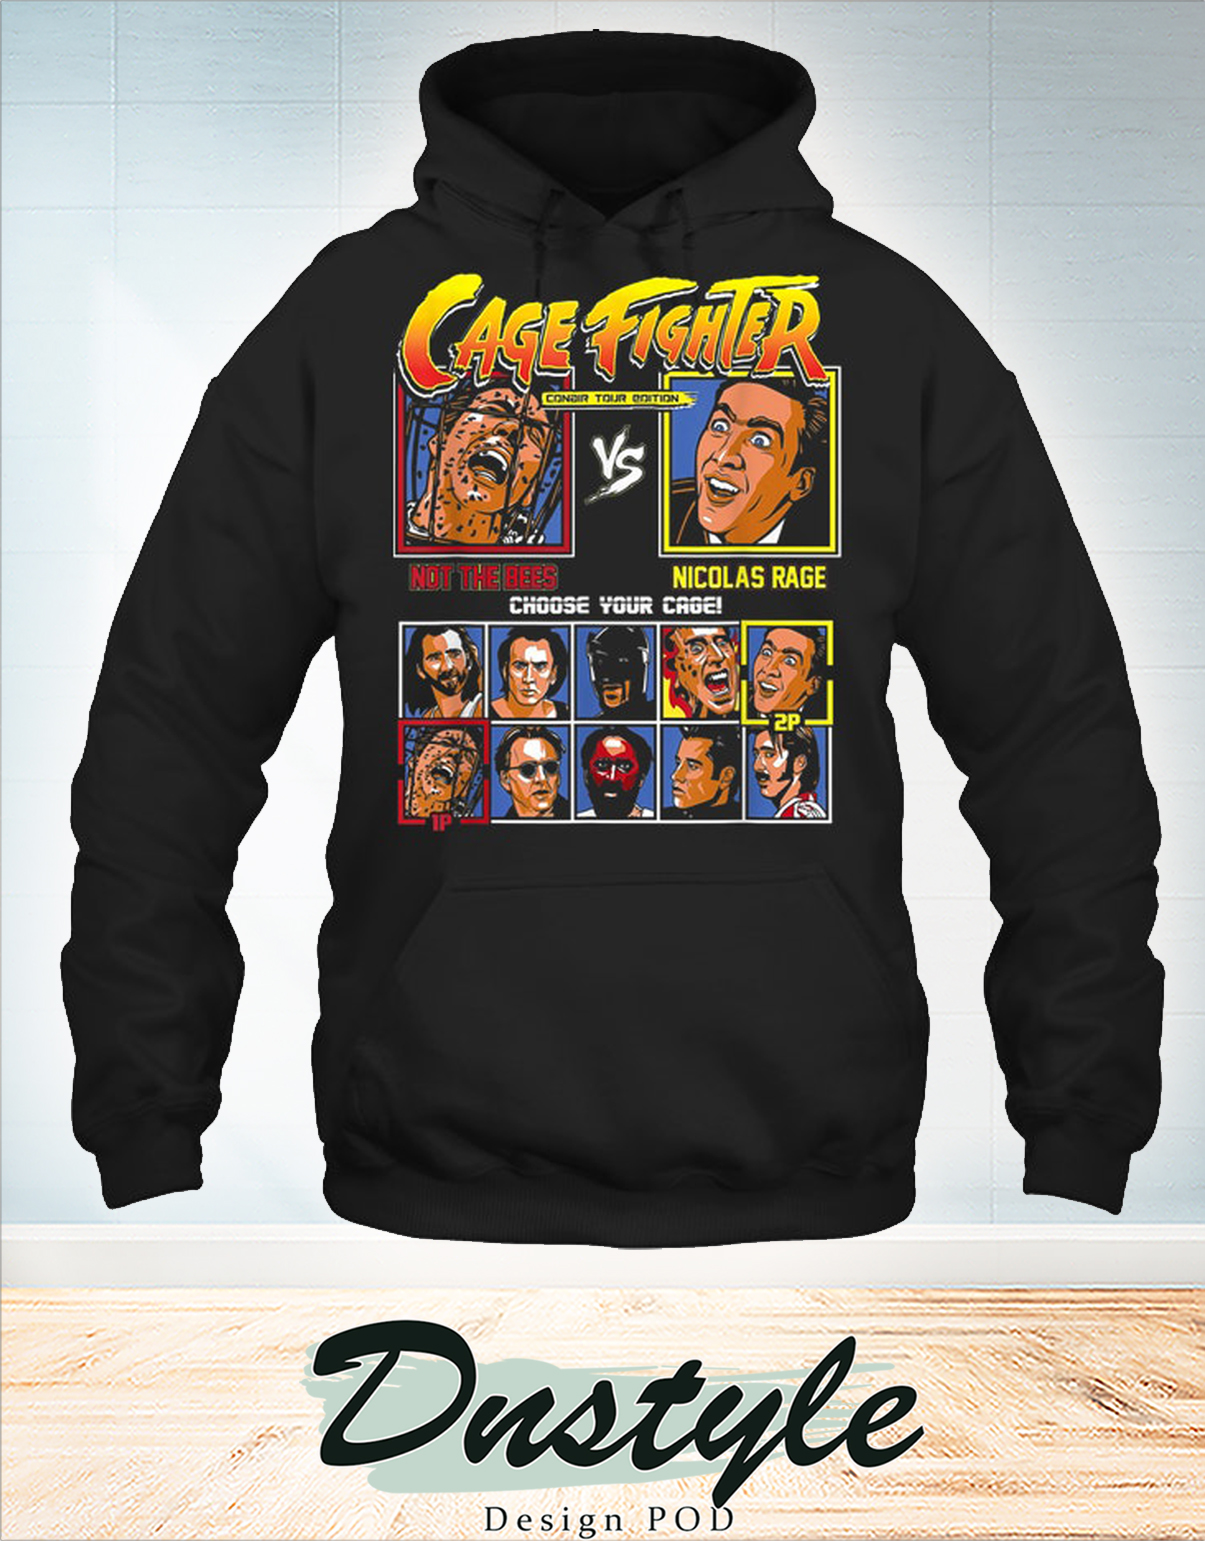 Cage fighter not the bees vs nicolas rage hoodie